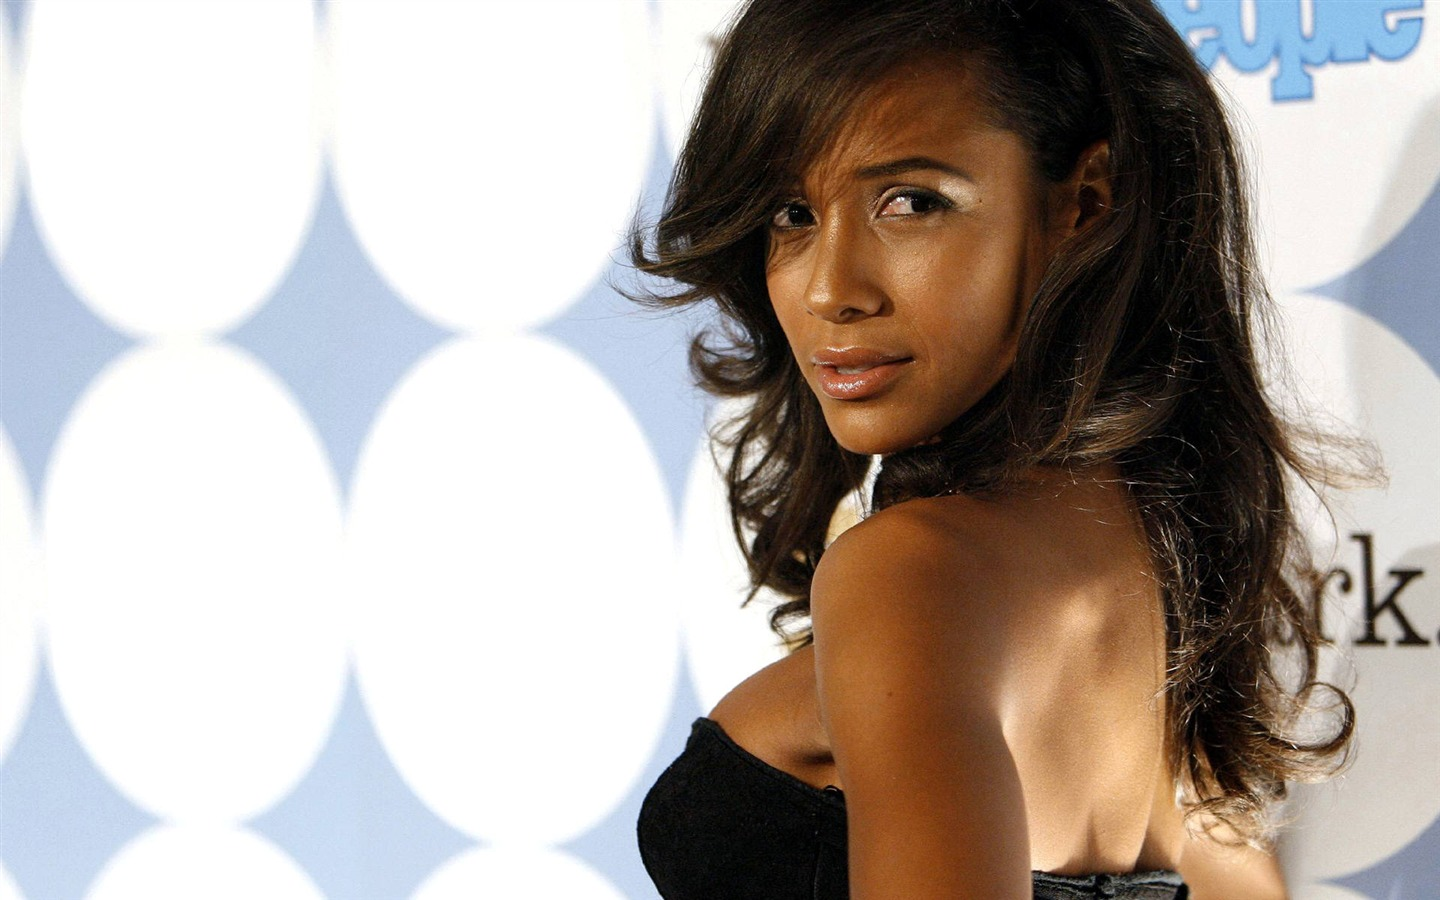 Dania Ramirez #013 - 1440x900 Wallpapers Pictures Photos Images